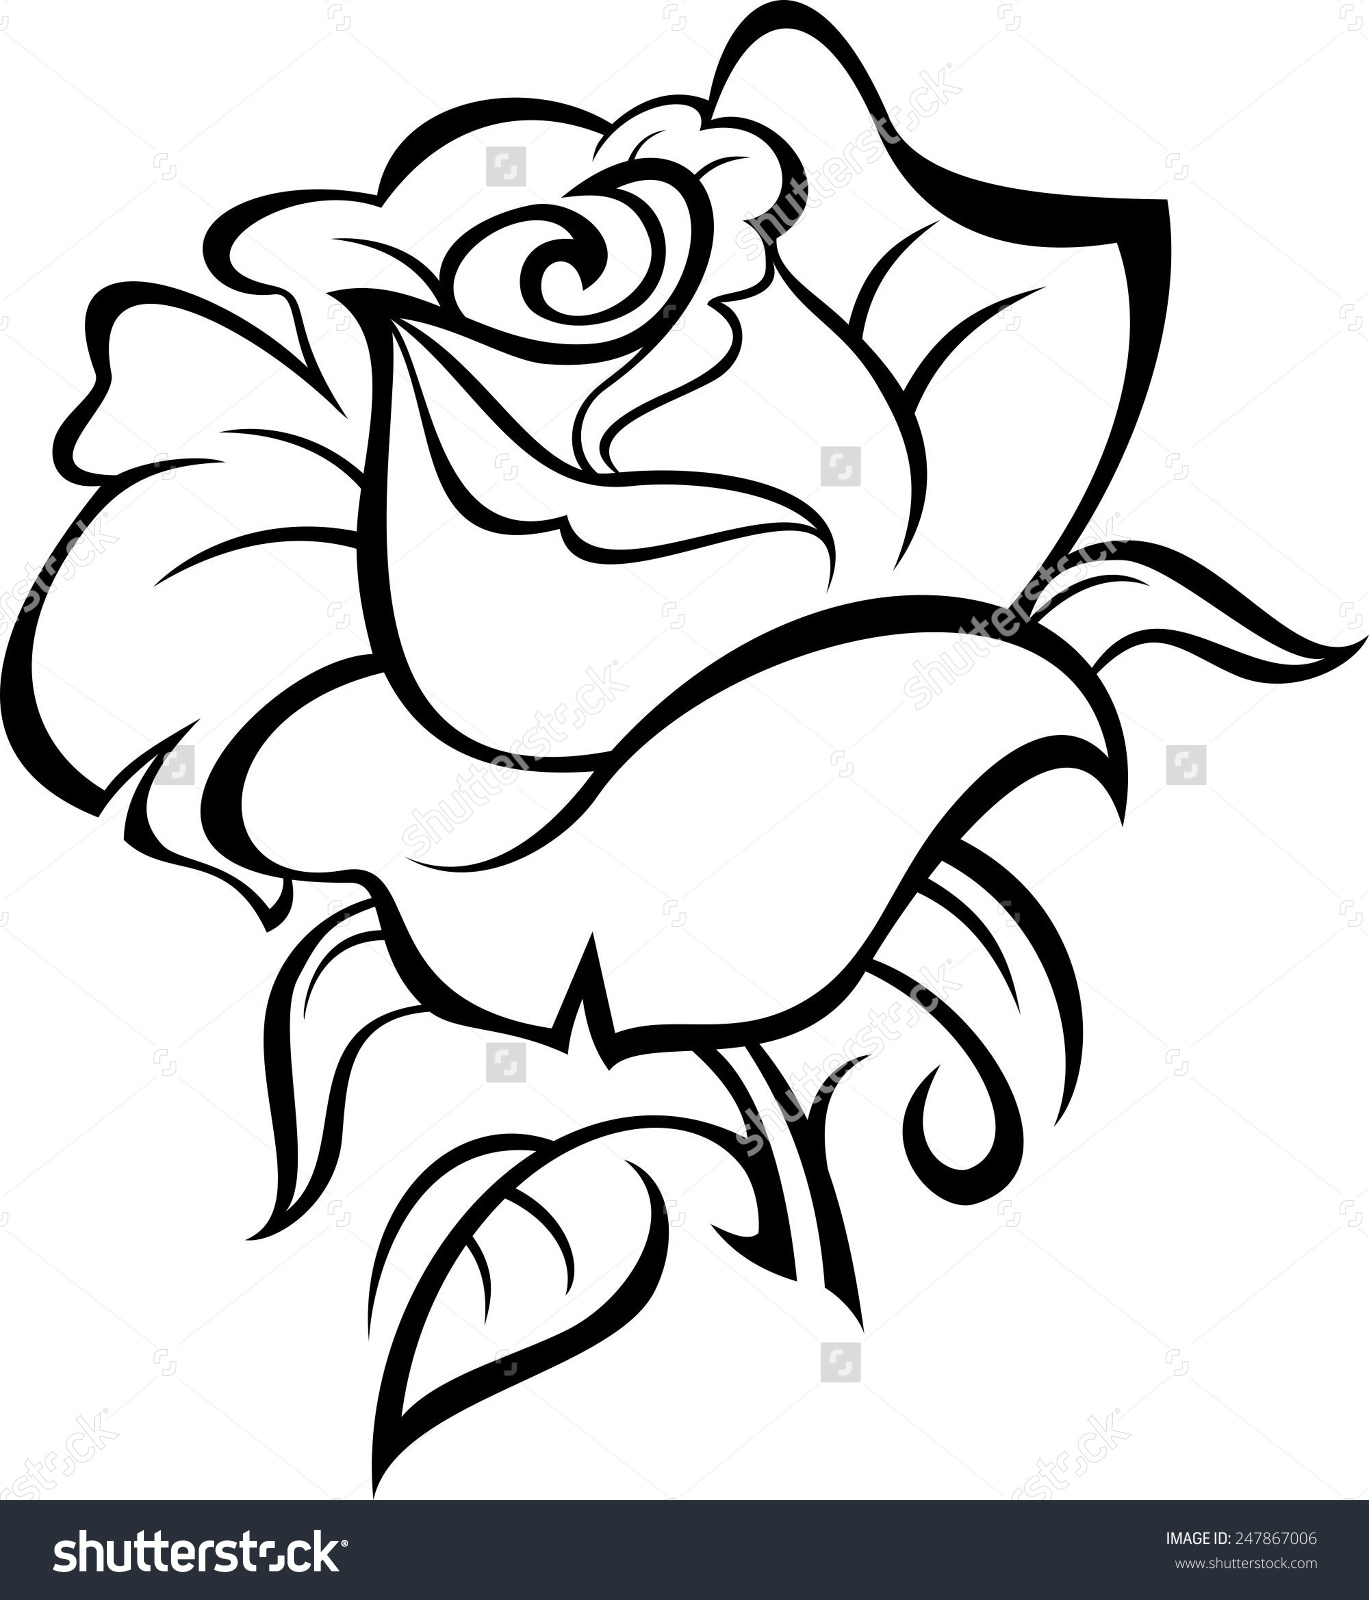 1369x1600 Collection Of Fresh Black Outline Rose Tattoo Design